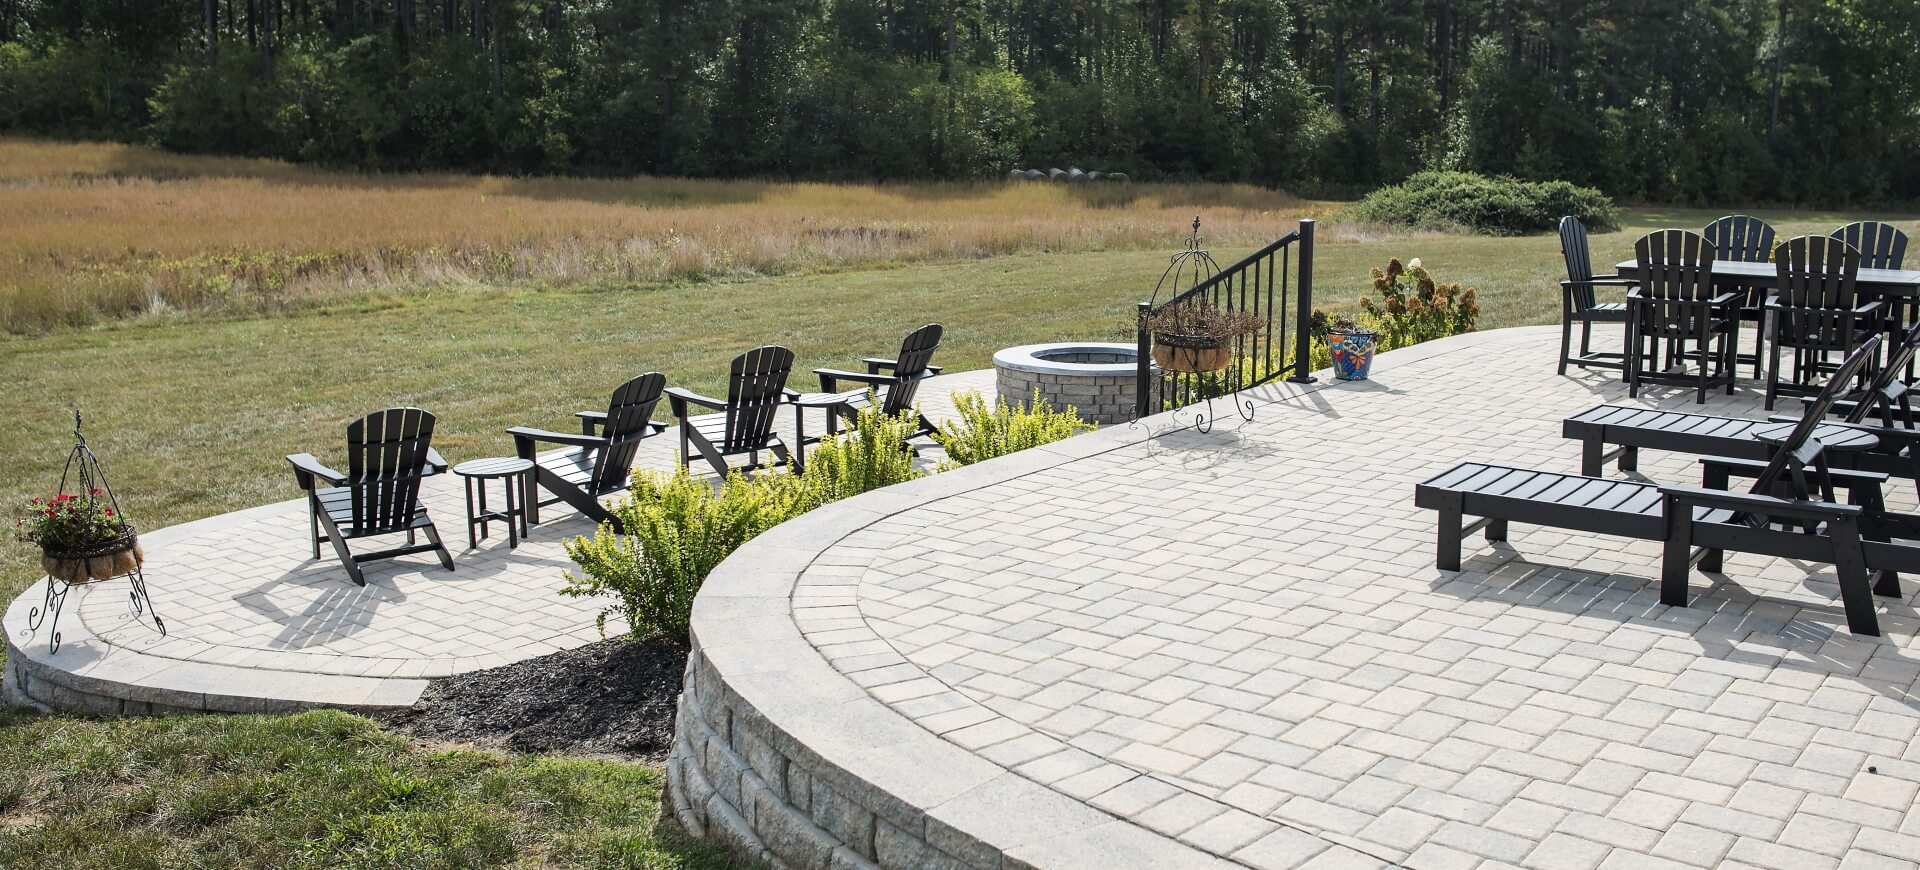 Elevated patio, pavers, stone, hardscape, landscape, entertaining